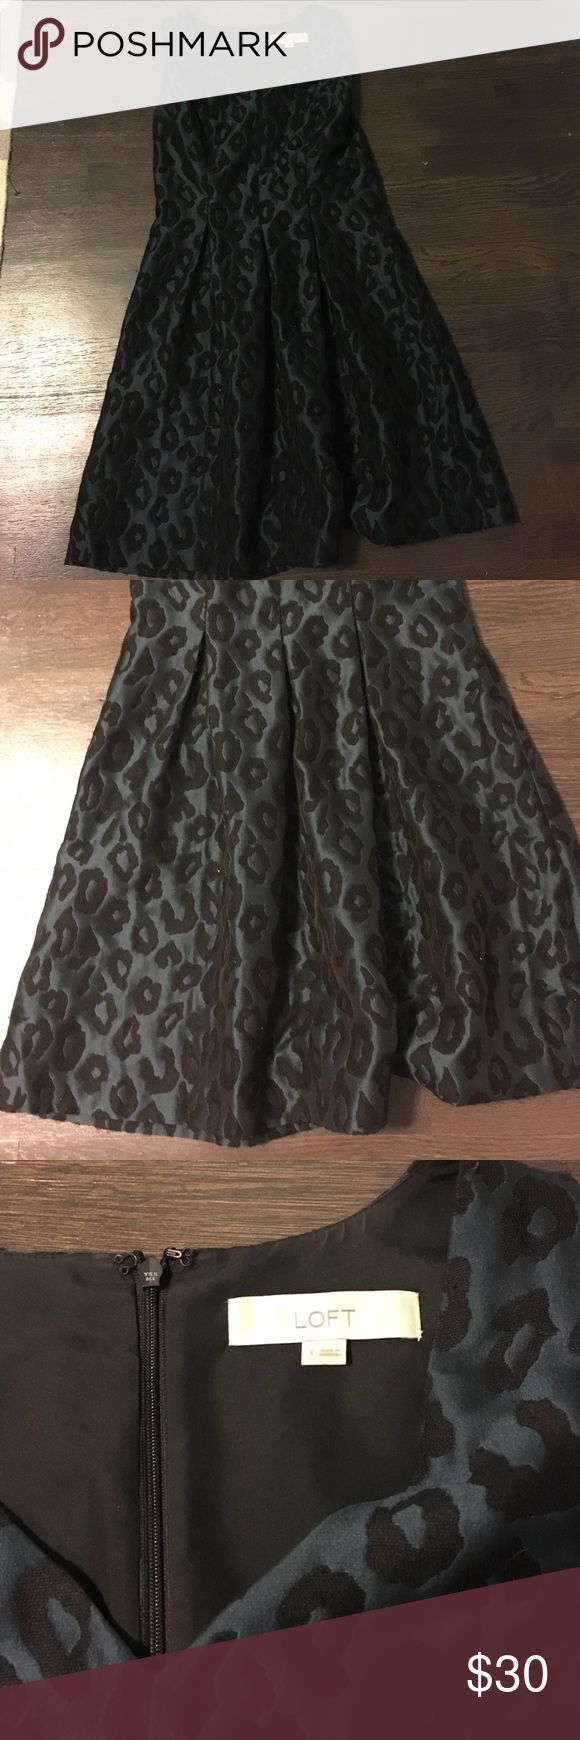 Stylish Ann Taylor loft dress Cheetah print in dark green and black!! Back zipper. LOFT Dresses